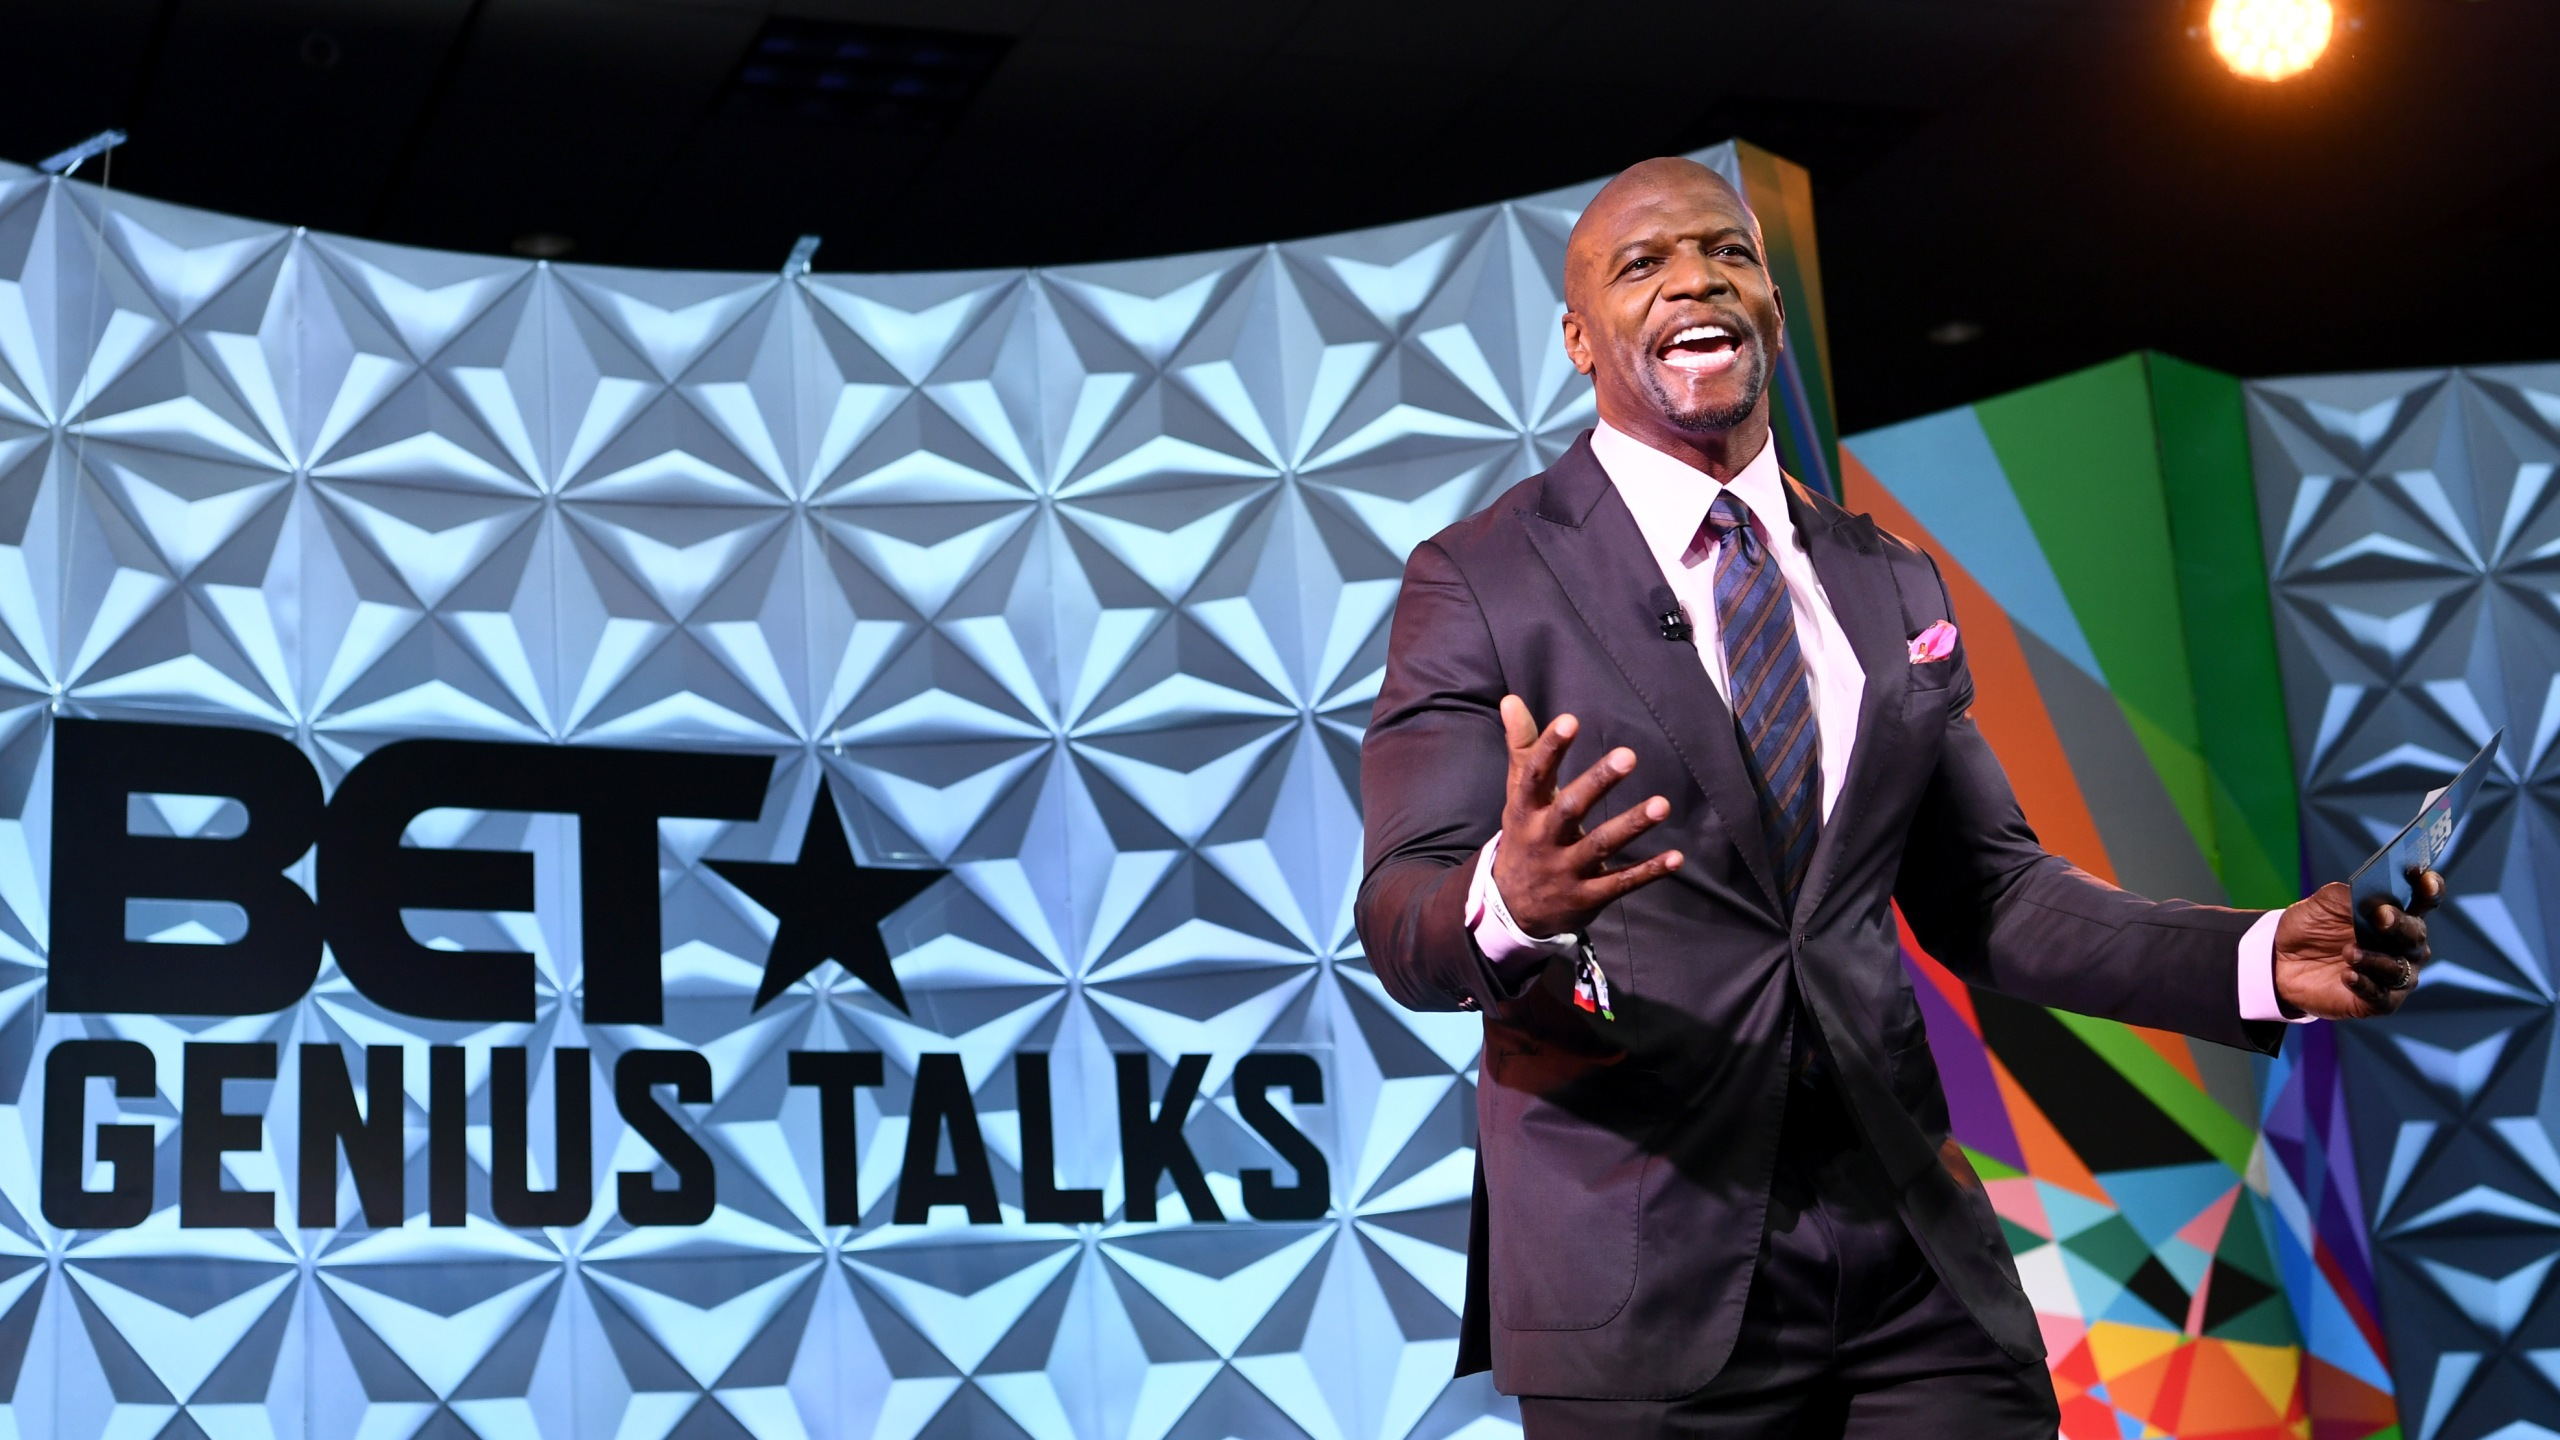 Terry Crews speaks onstage at the Genius Talks sponsored by AT&T during the 2018 BET Experience at the Los Angeles Convention Center on June 23, 2018, in Los Angeles. (Credit: Emma McIntyre/Getty Images for BET)